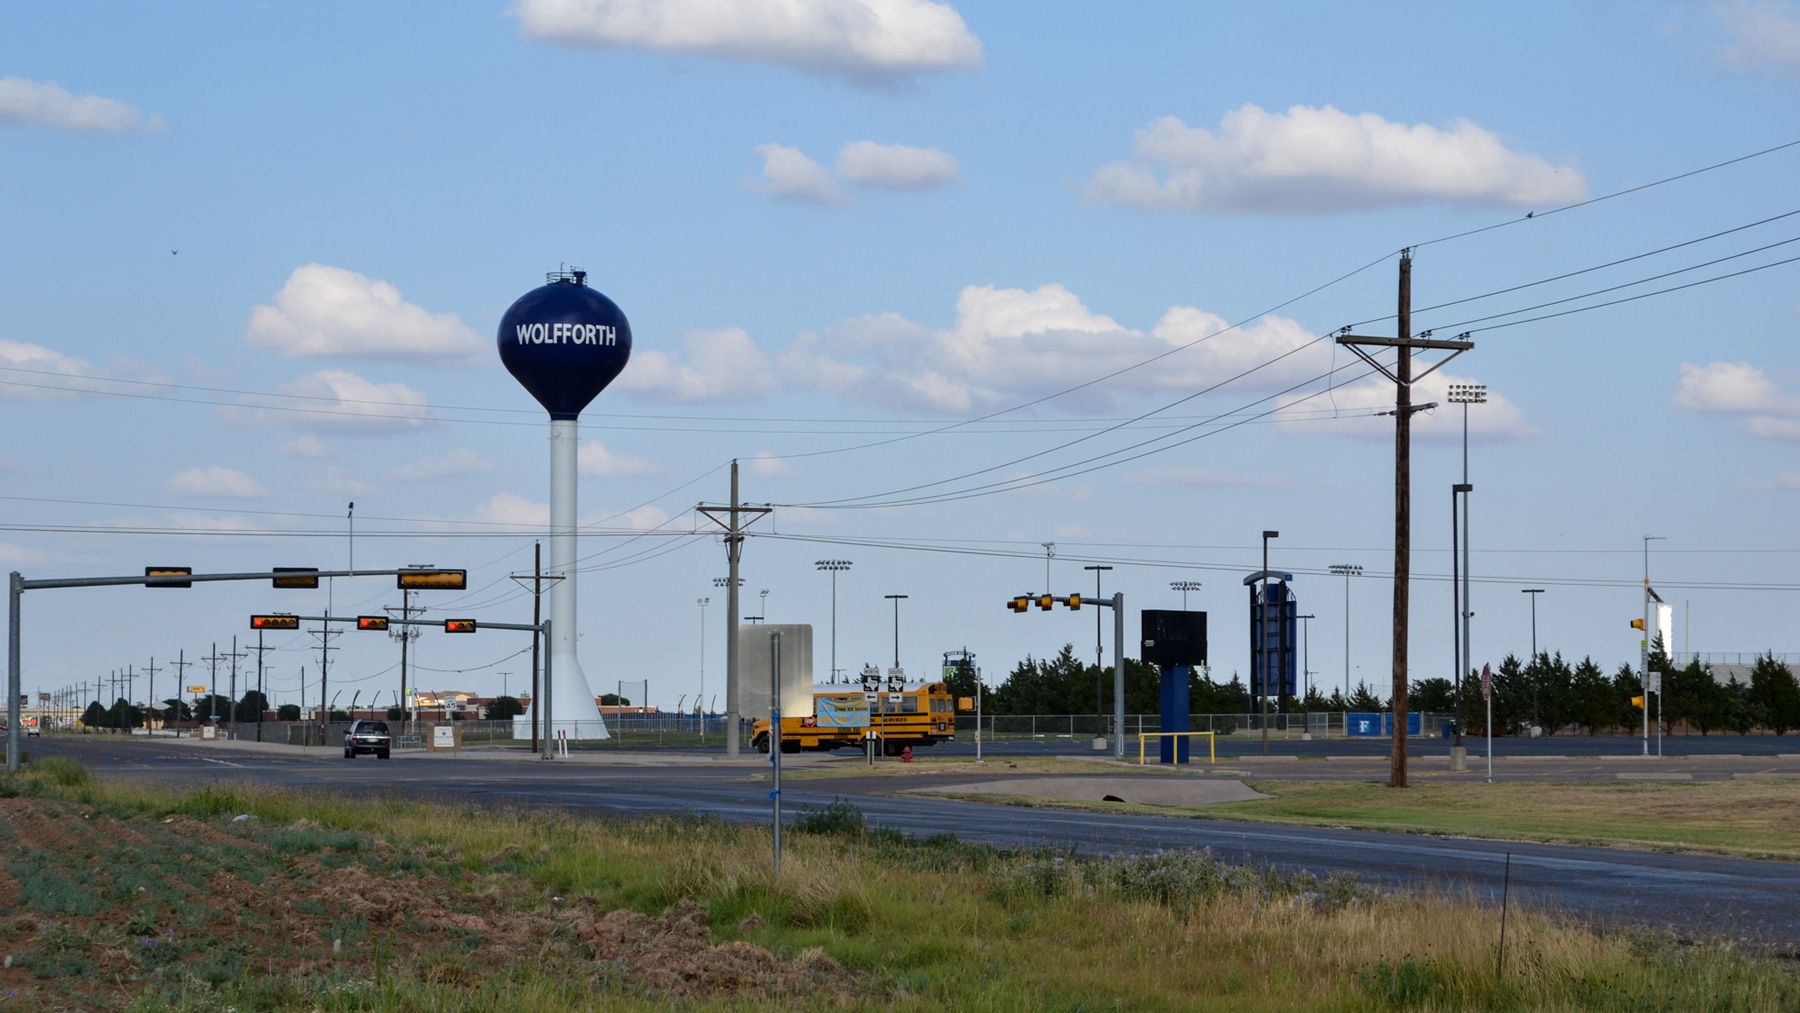 The water tower is one of the tallest structures in Wolfforth, Texas, a suburb of Lubbock. The city of 4,400 is growing, which helps fund projects like its water system upgrade. (Elizabeth Sims/News21)